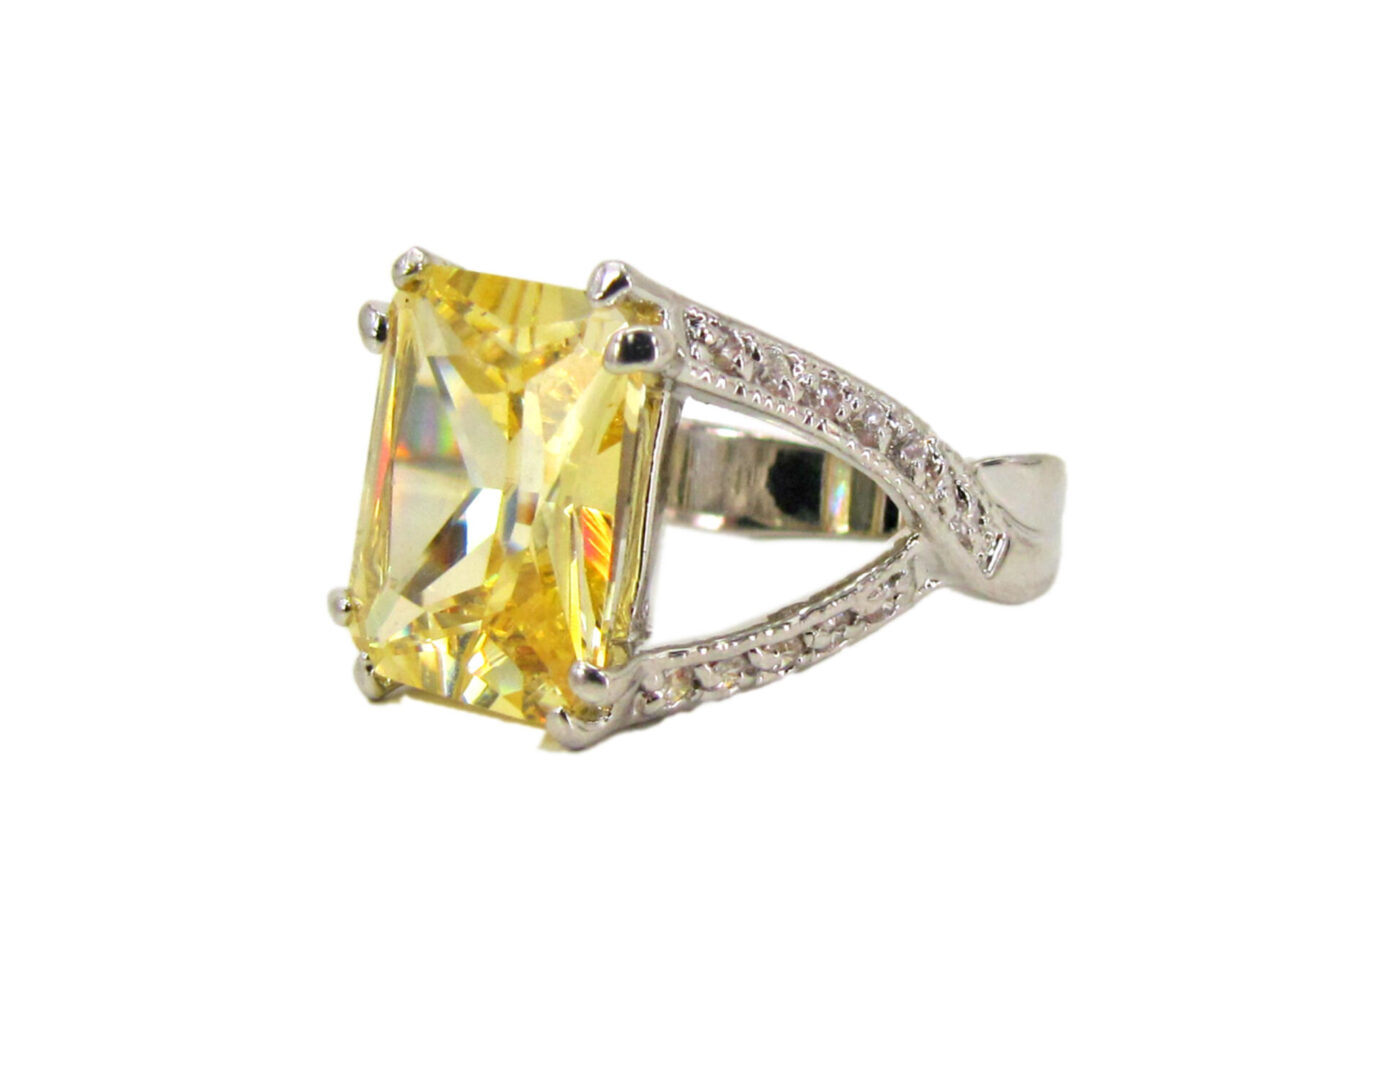 ring with square-cut yellow gem